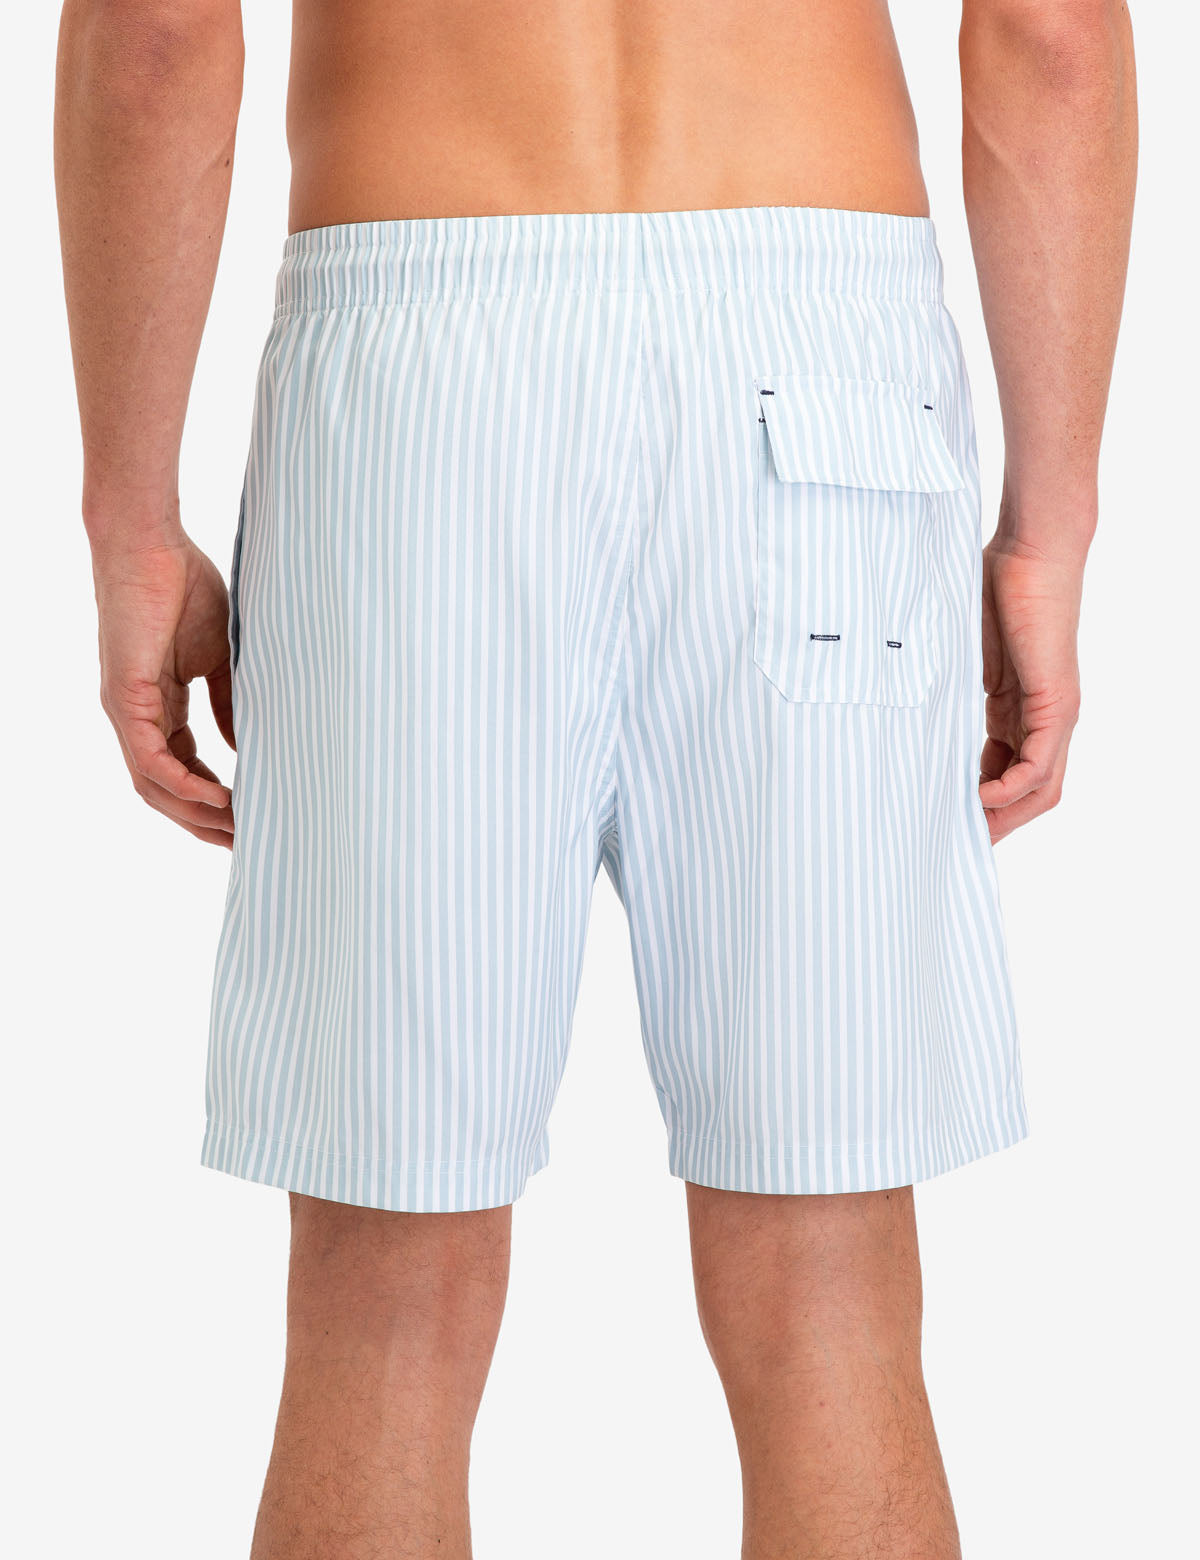 VERTICAL STRIPE SWIM TRUNKS - U.S. Polo Assn.